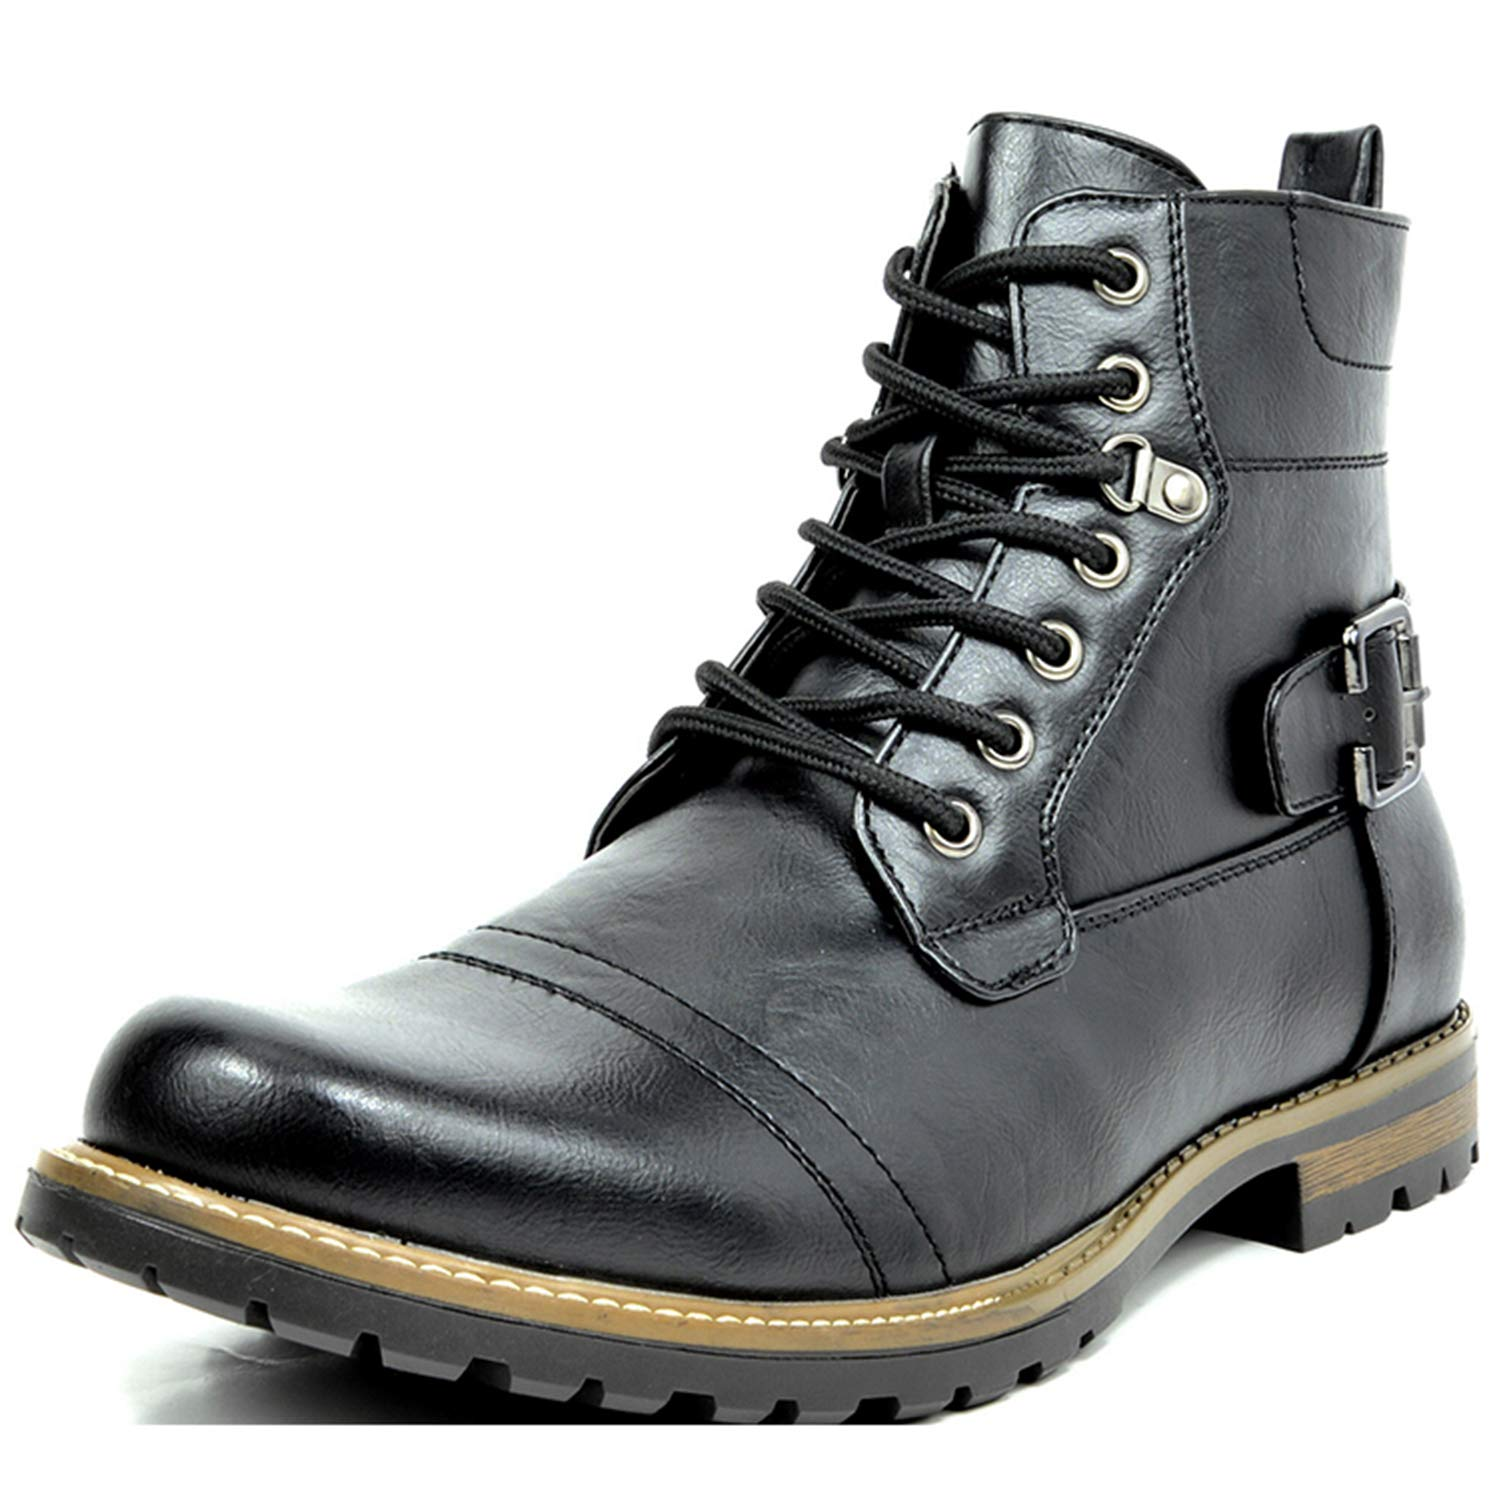 Steampunk Boots and Shoes for Men Bruno Marc Mens Military Motorcycle Combat Boots $39.99 AT vintagedancer.com